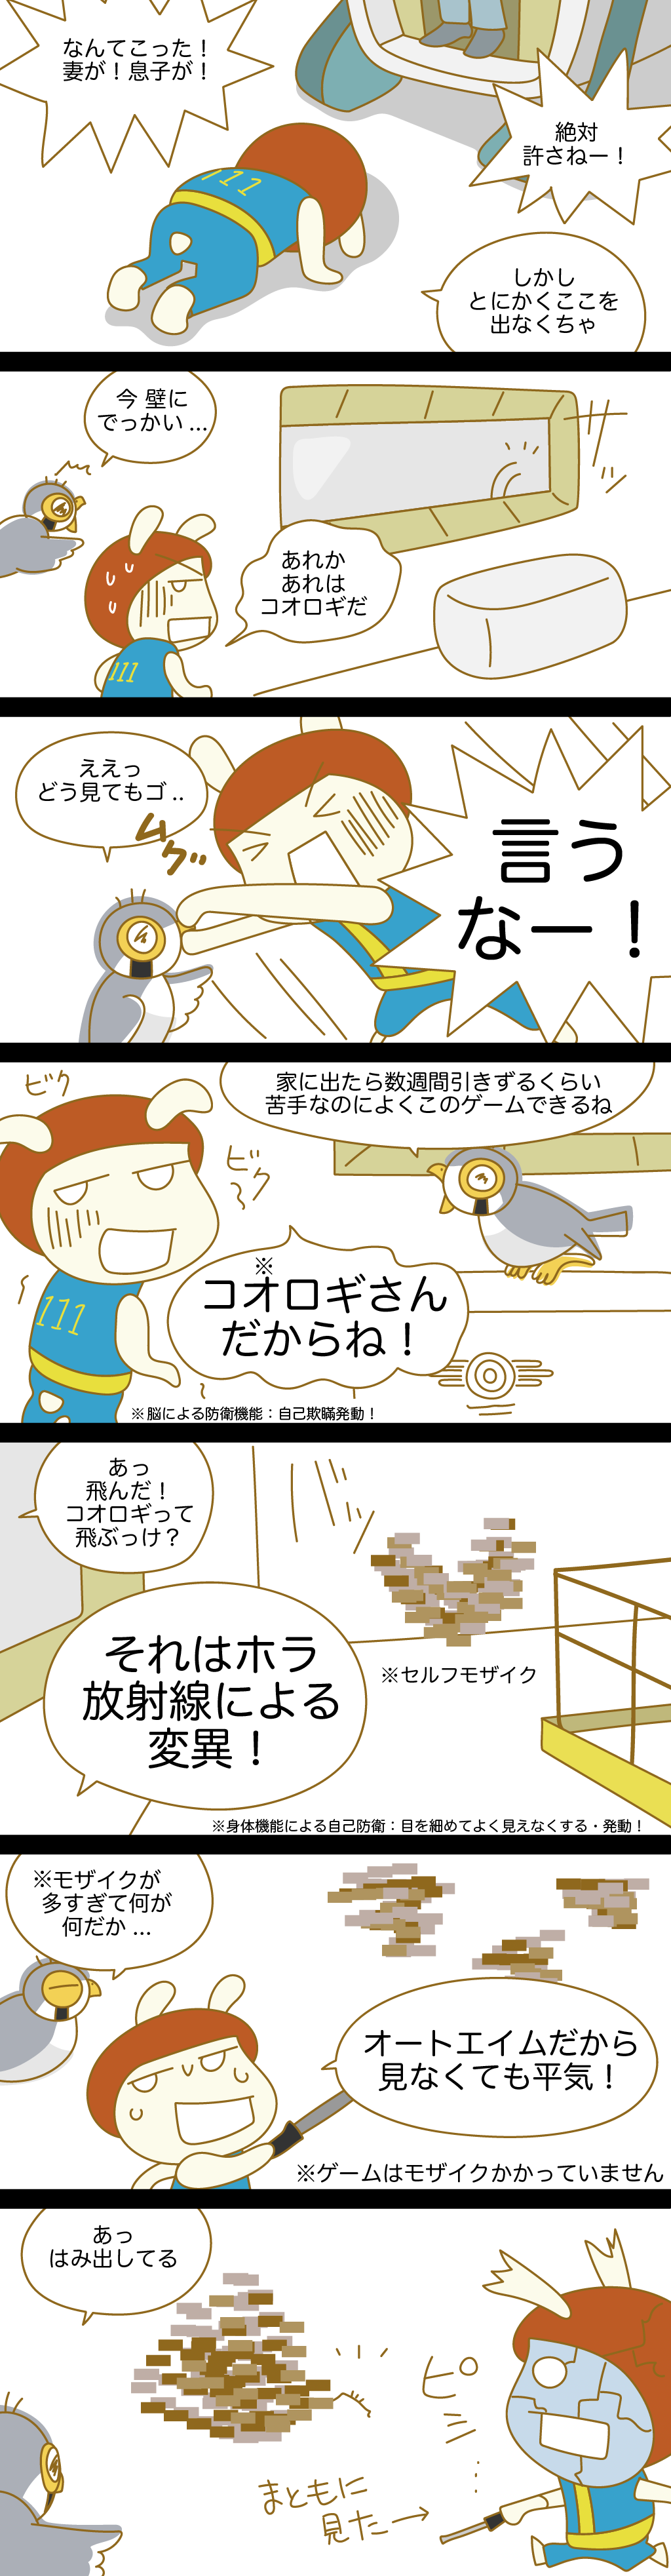 Fallout漫画日記4・壁にアレが...[虫注意]